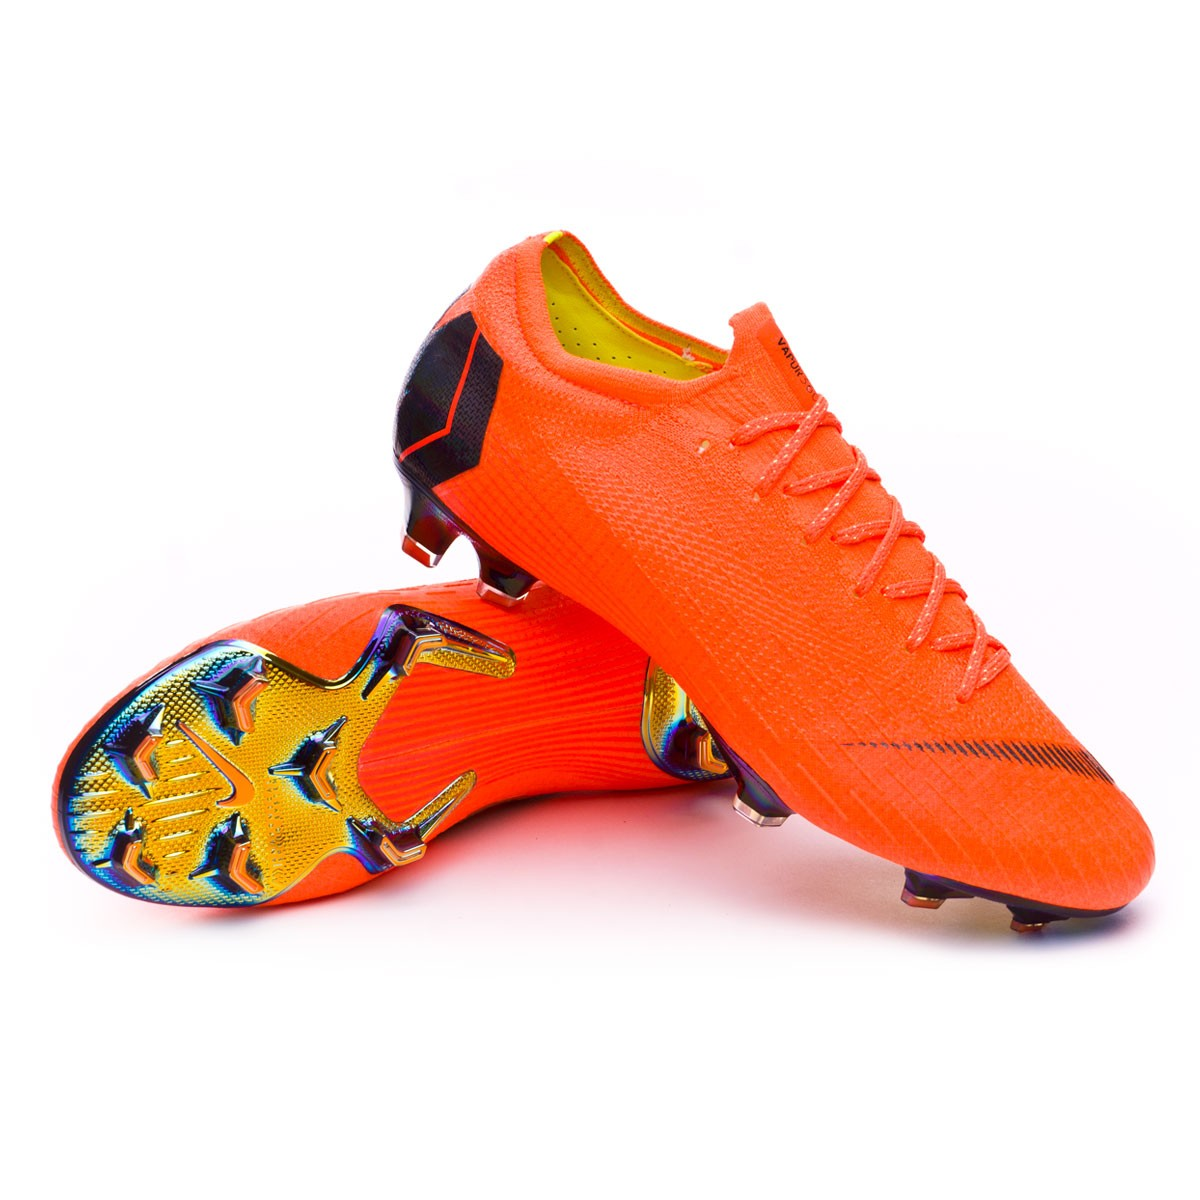 Zapatos de fútbol Nike Mercurial Vapor XII Elite FG Total orange ... 5ad0daaea0c3b